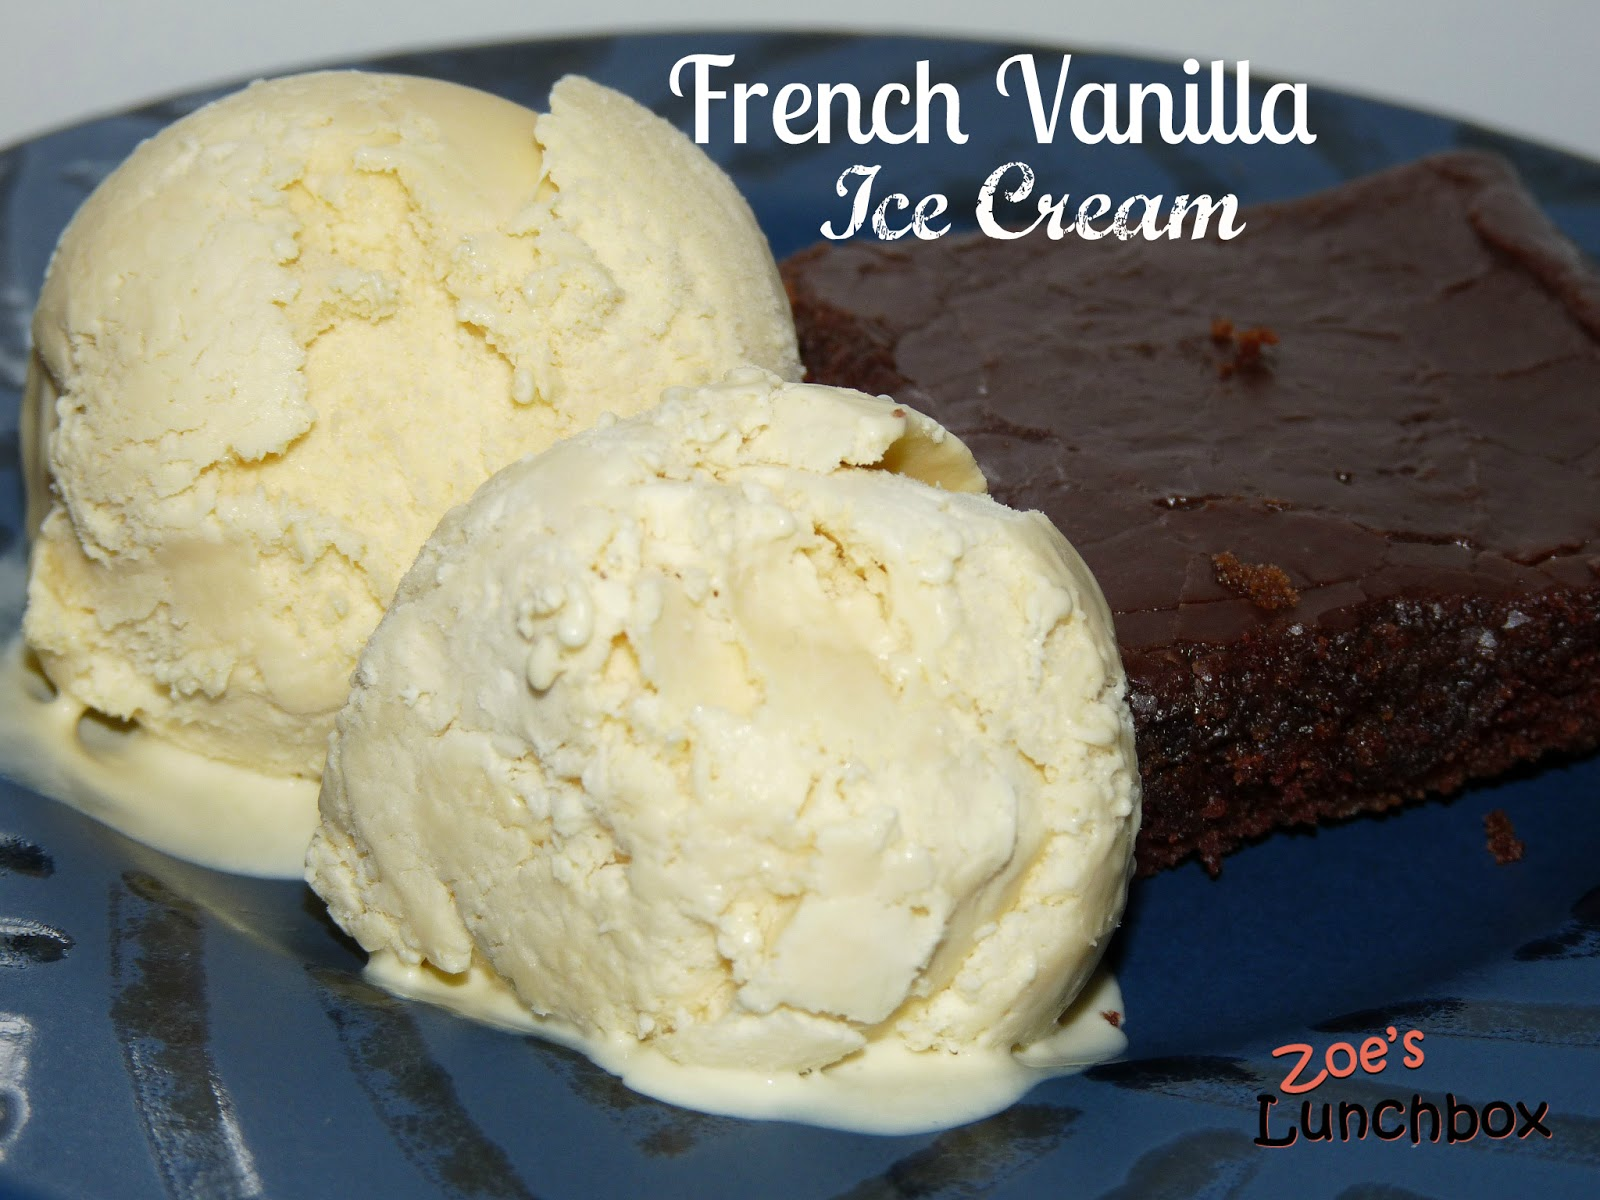 Zoe's Lunchbox: Recipe Review - French Vanilla Ice Cream